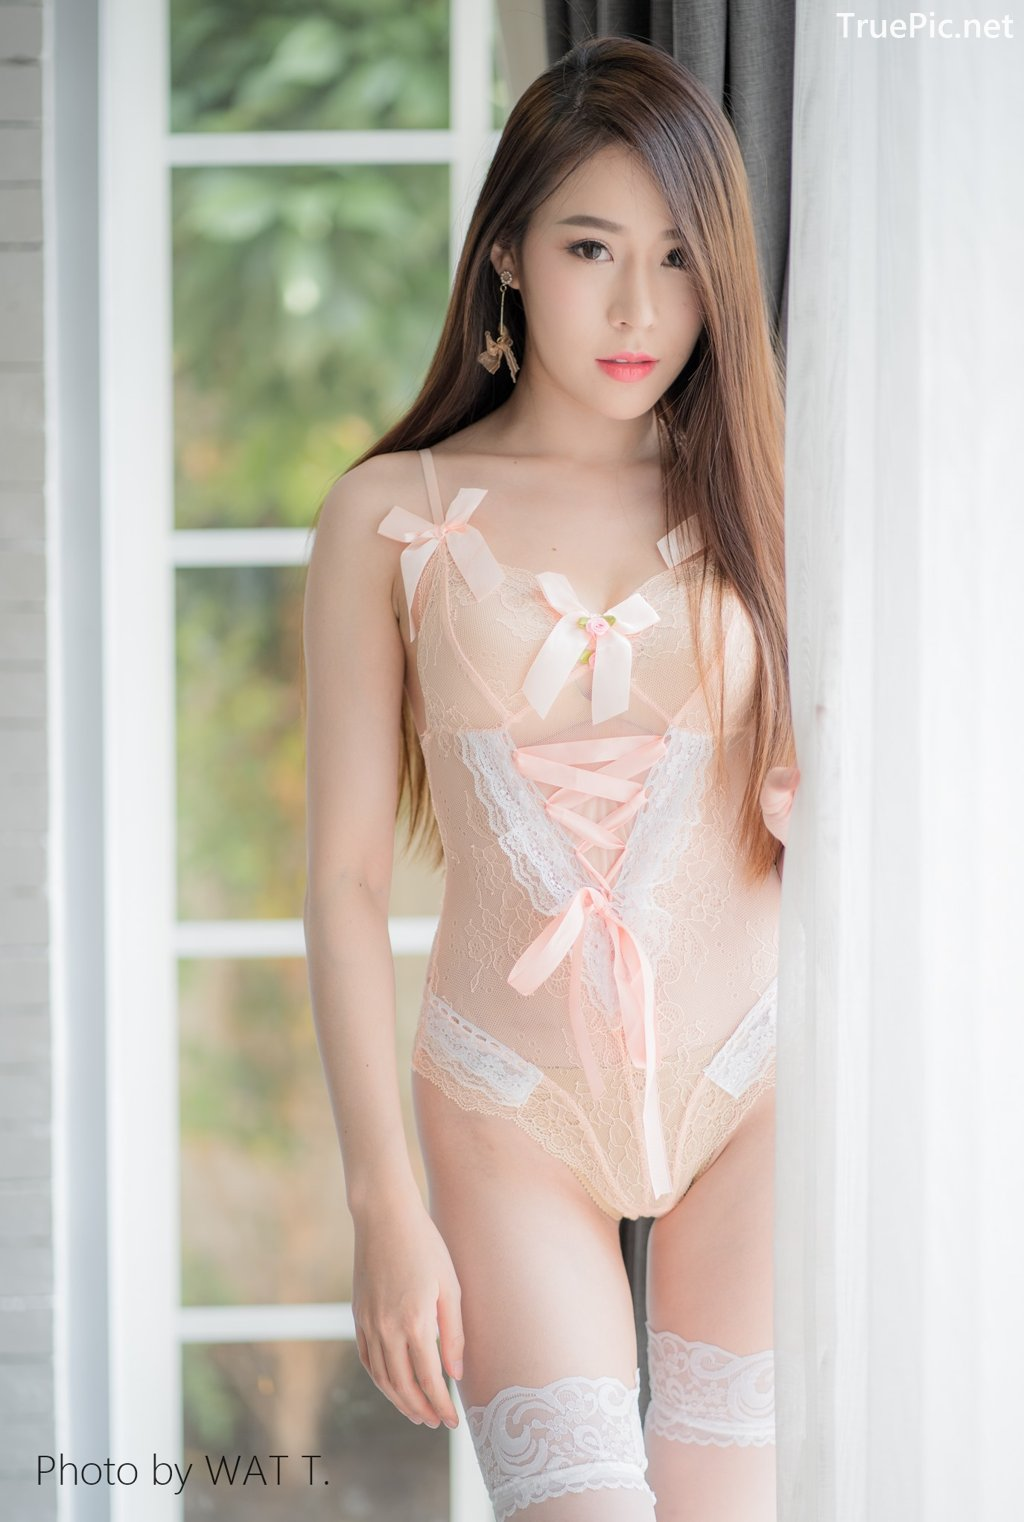 Image Thailand Model - Thipsuda Jitaree - Pink Sky Lingerie - TruePic.net - Picture-6